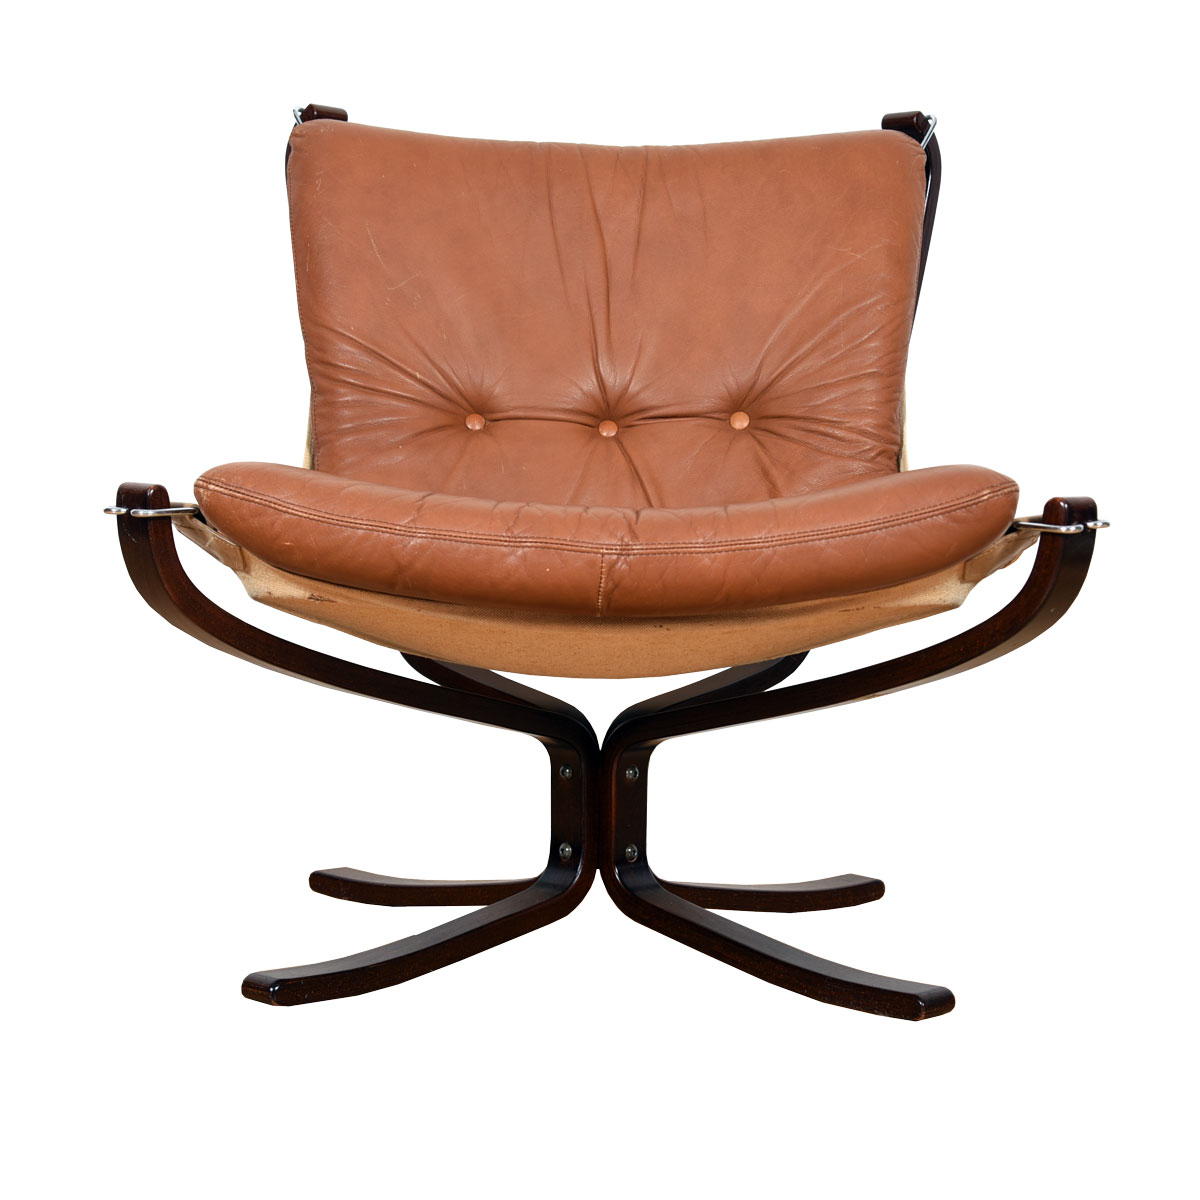 Westnofa Chair with Rosewood Base & Caramel Colored Leather Cushions